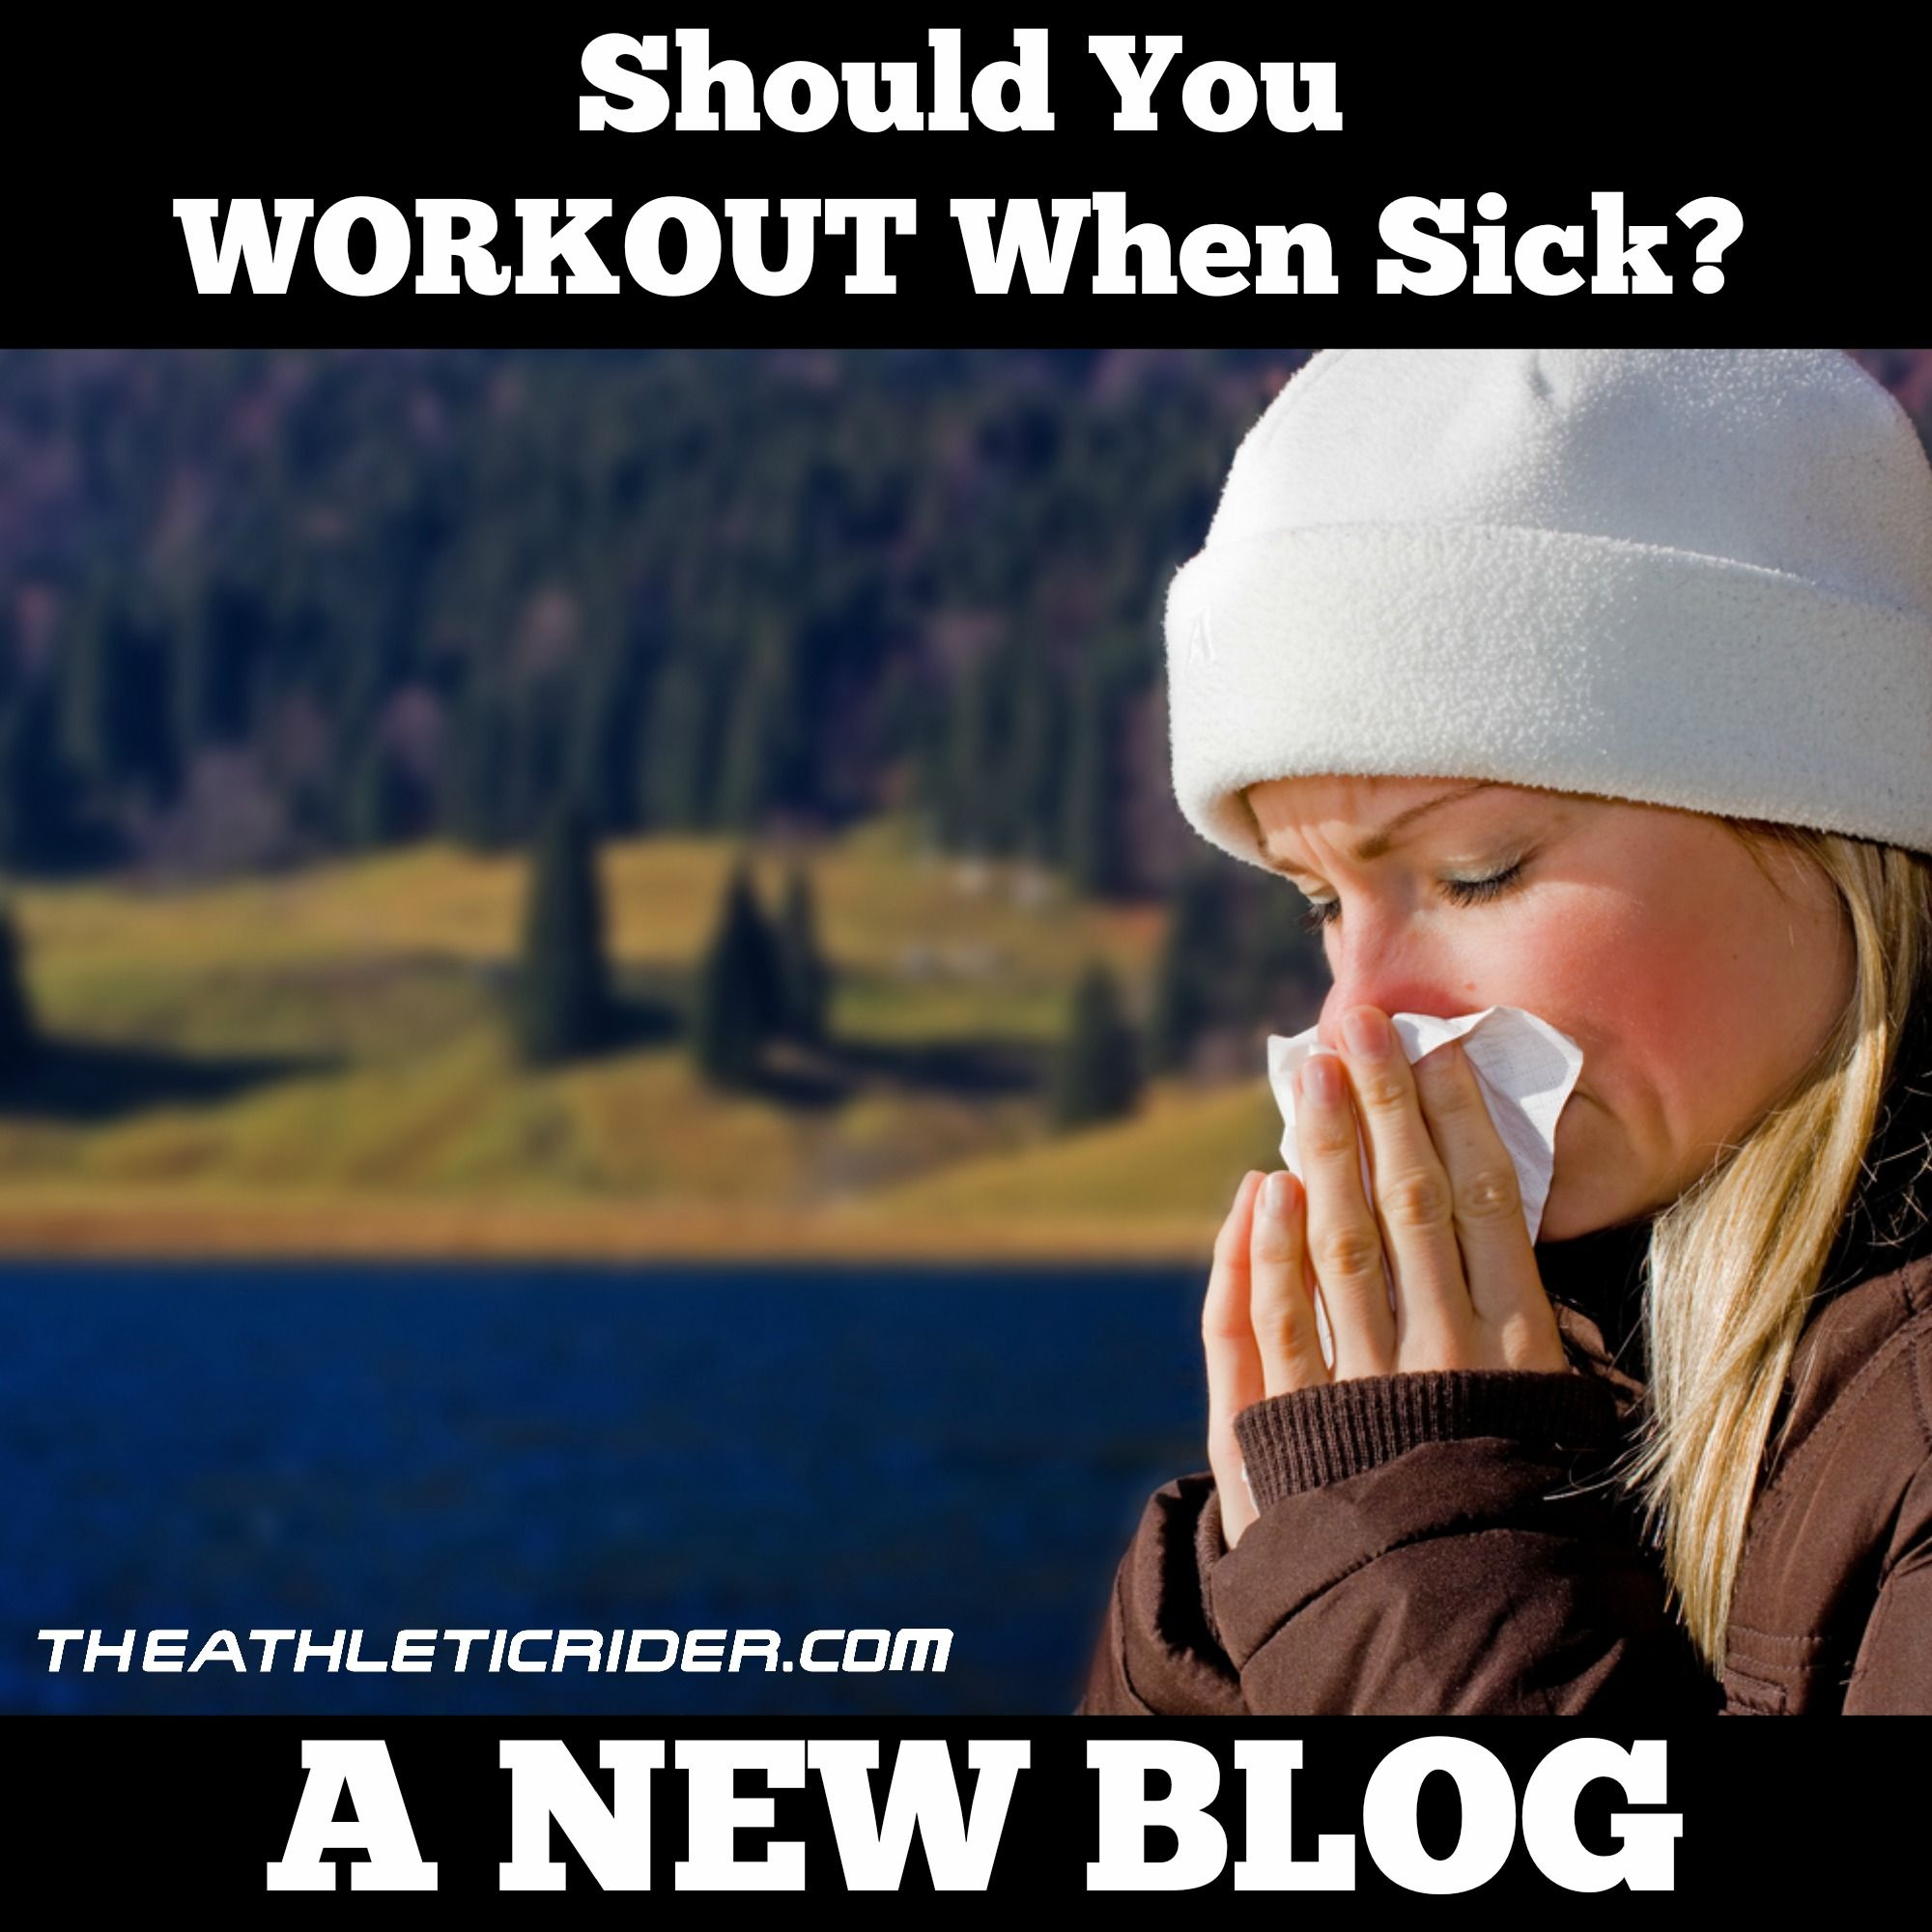 Fall is in the air and that means winter colds are JUST around the corner. SO…   If you have a cold or are just feeling under the weather, should your rider fitness program be put on pause?